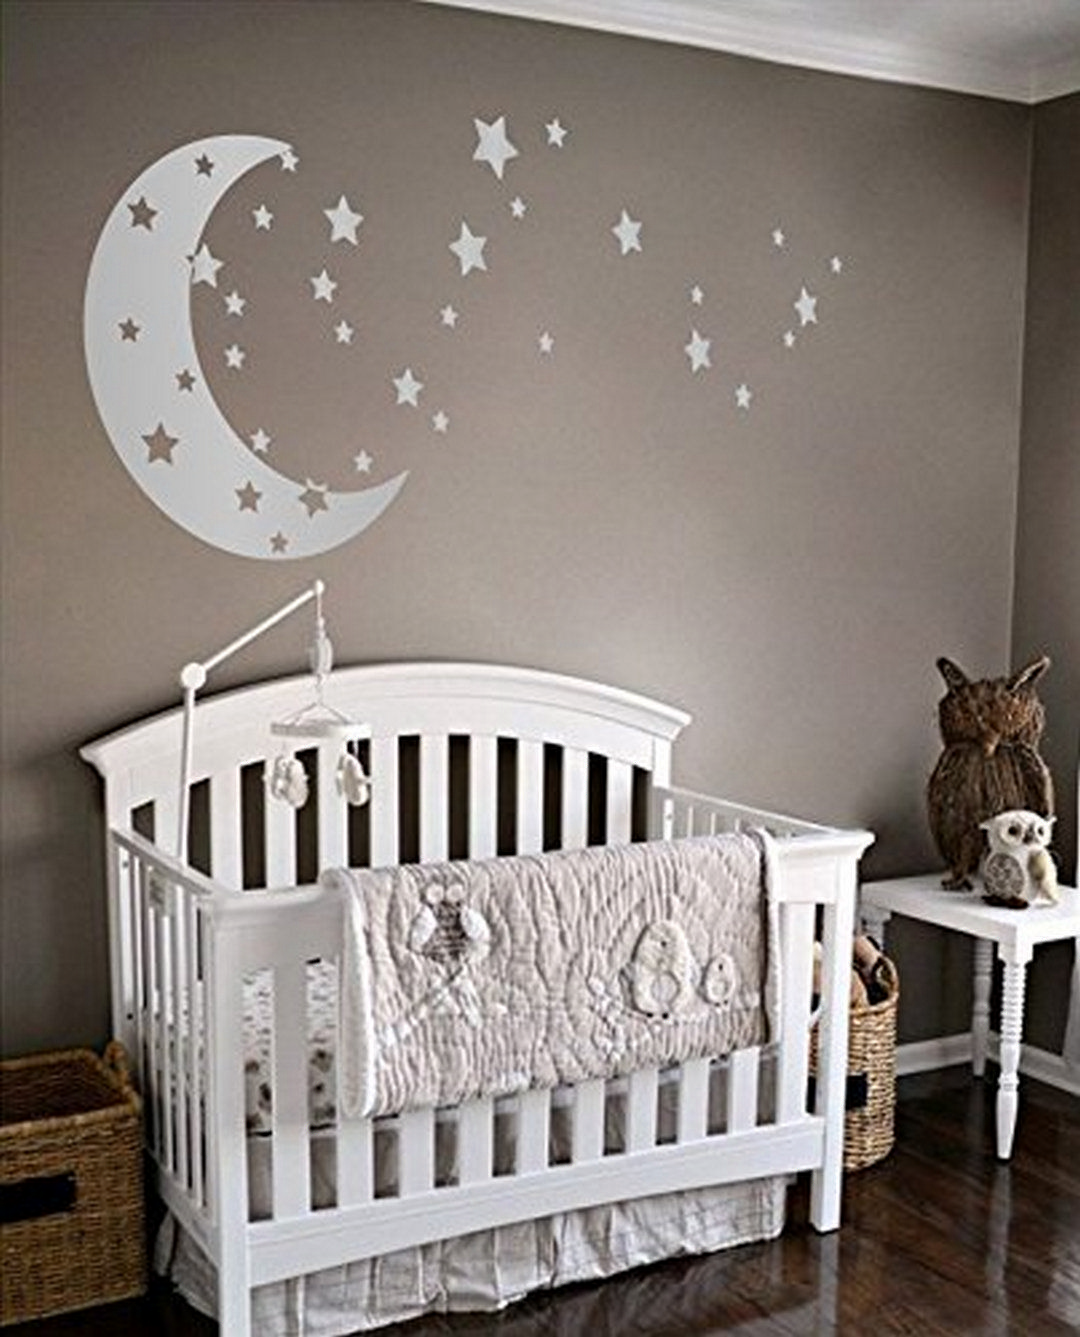 38 dazzling moon and stars nursery decoration ideas gorgeous interior ideas baby boy nursery. Black Bedroom Furniture Sets. Home Design Ideas